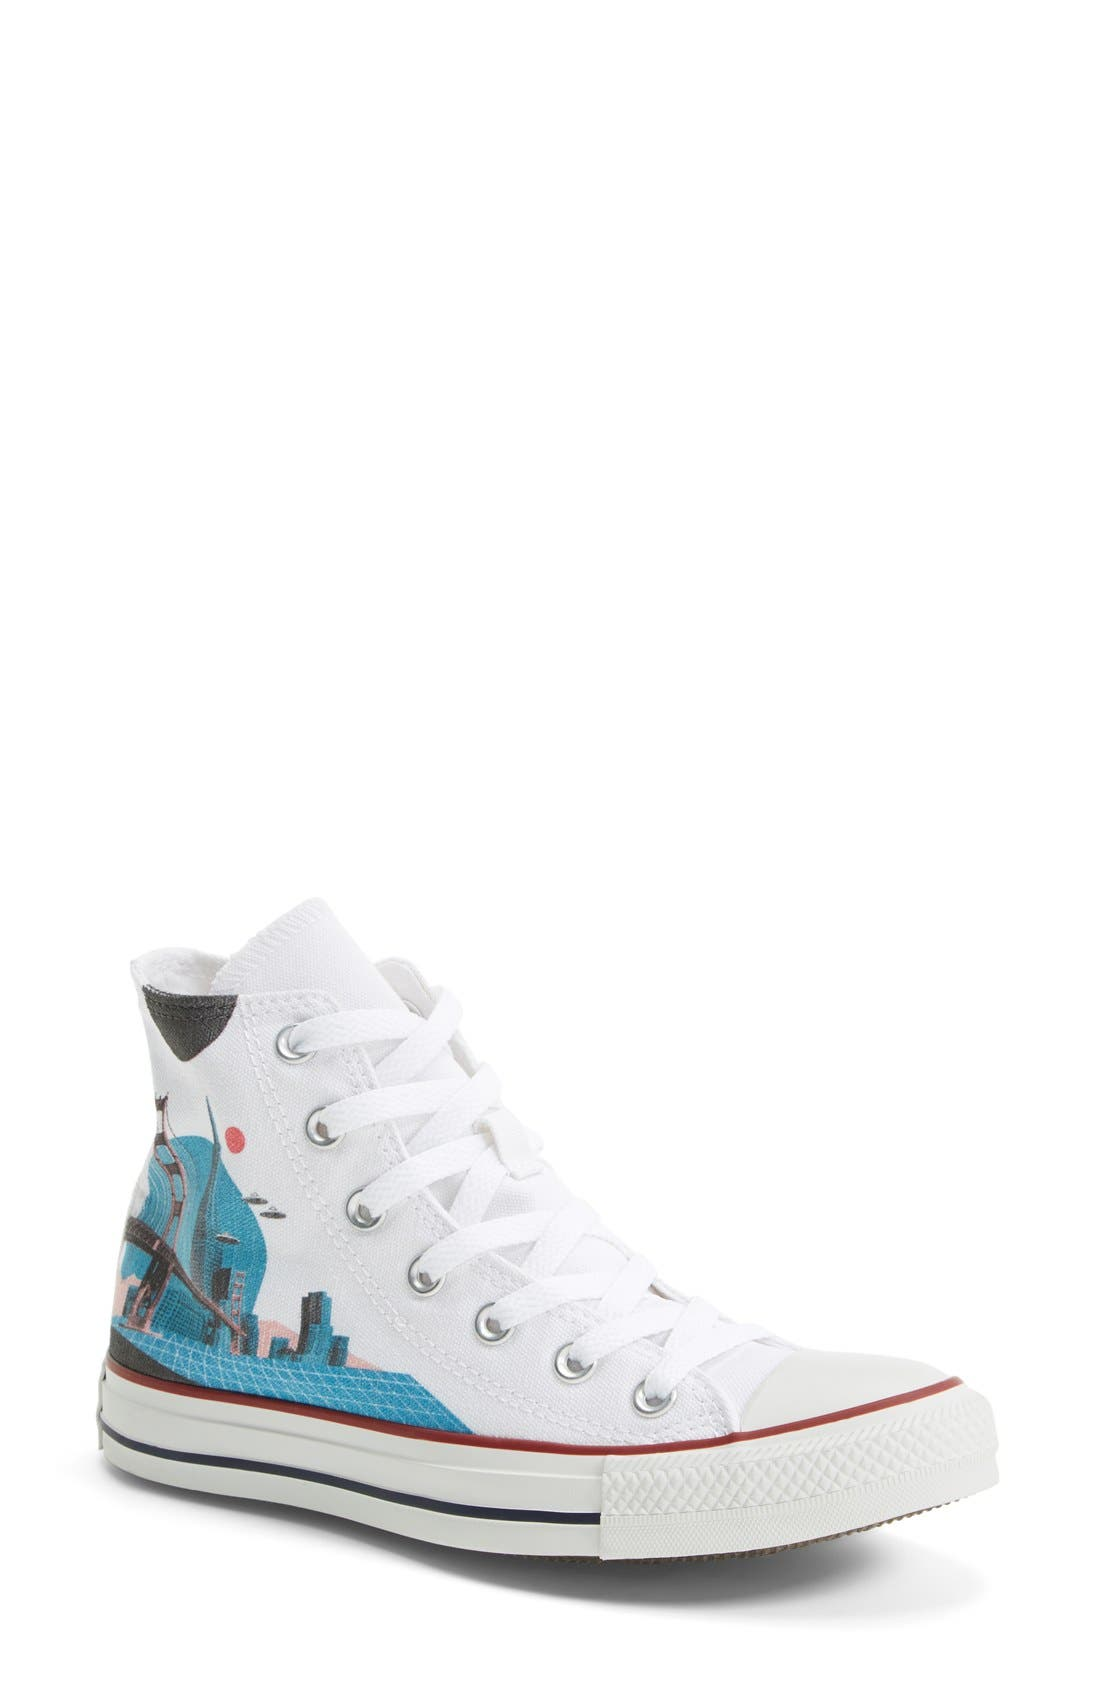 Chuck Taylor<sup>®</sup> All Star<sup>®</sup> 'Made By You - San Francisco' High Top Sneaker,                             Main thumbnail 1, color,                             102